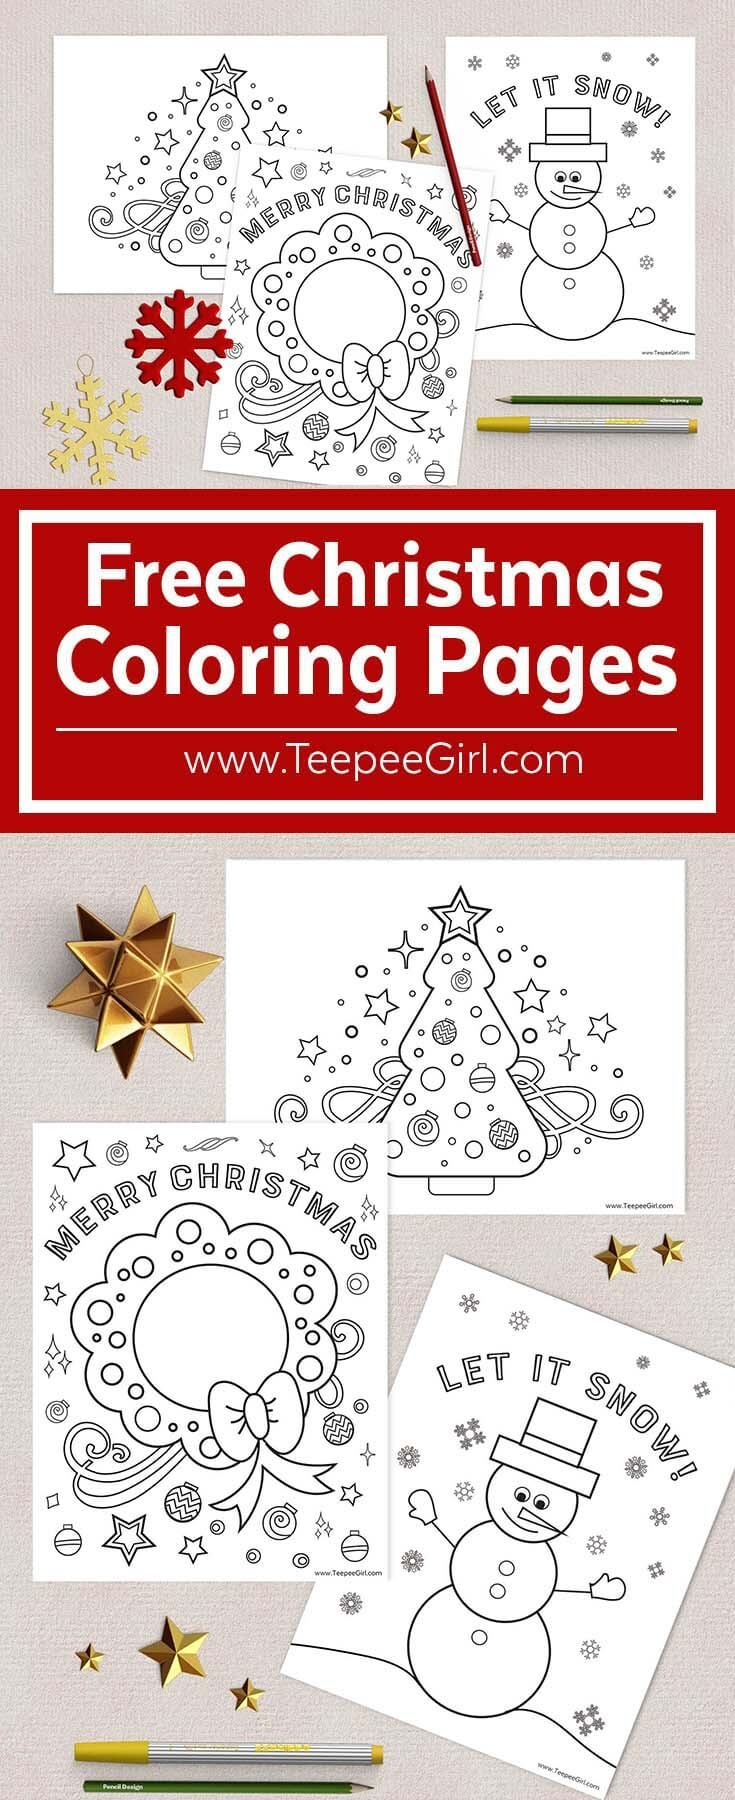 Free Christmas Coloring Pages | Navidad, Imprimibles y Pintar